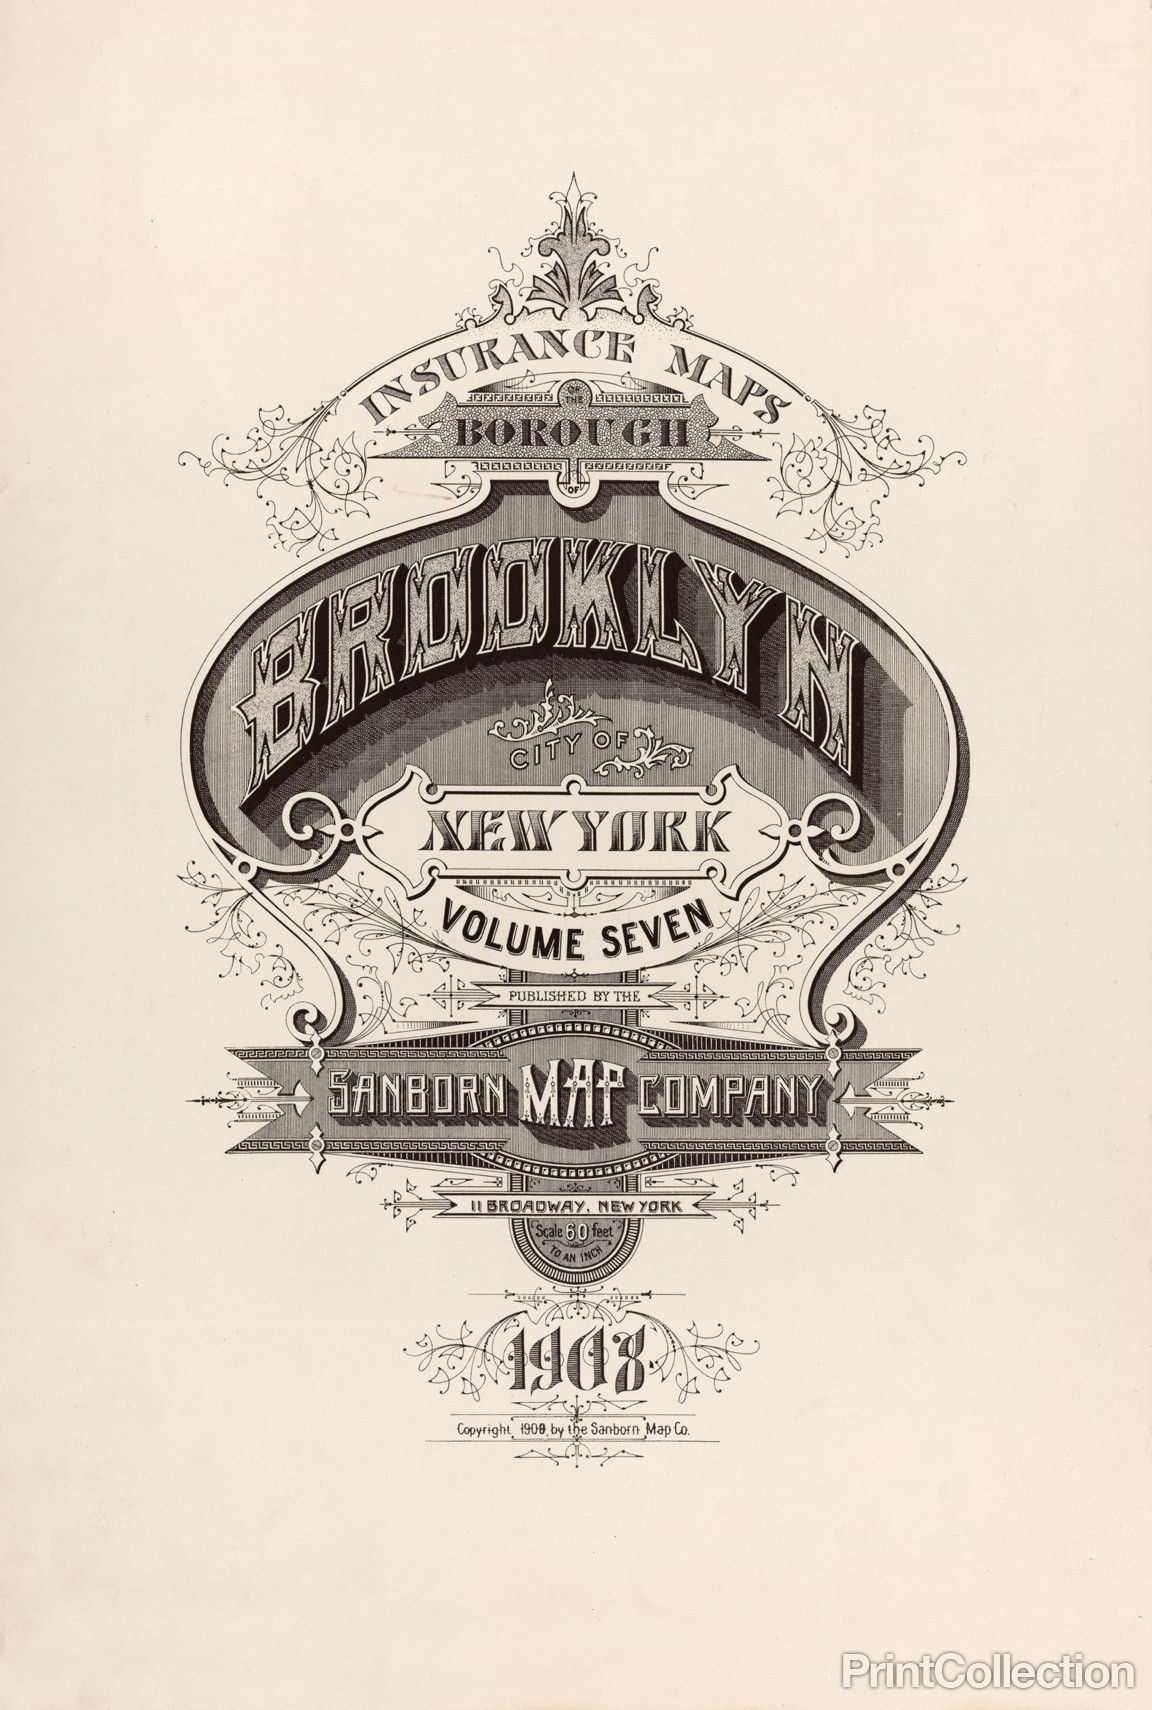 Print Collection Brooklyn Fire Insurance Map Shrifti Grafika Diti